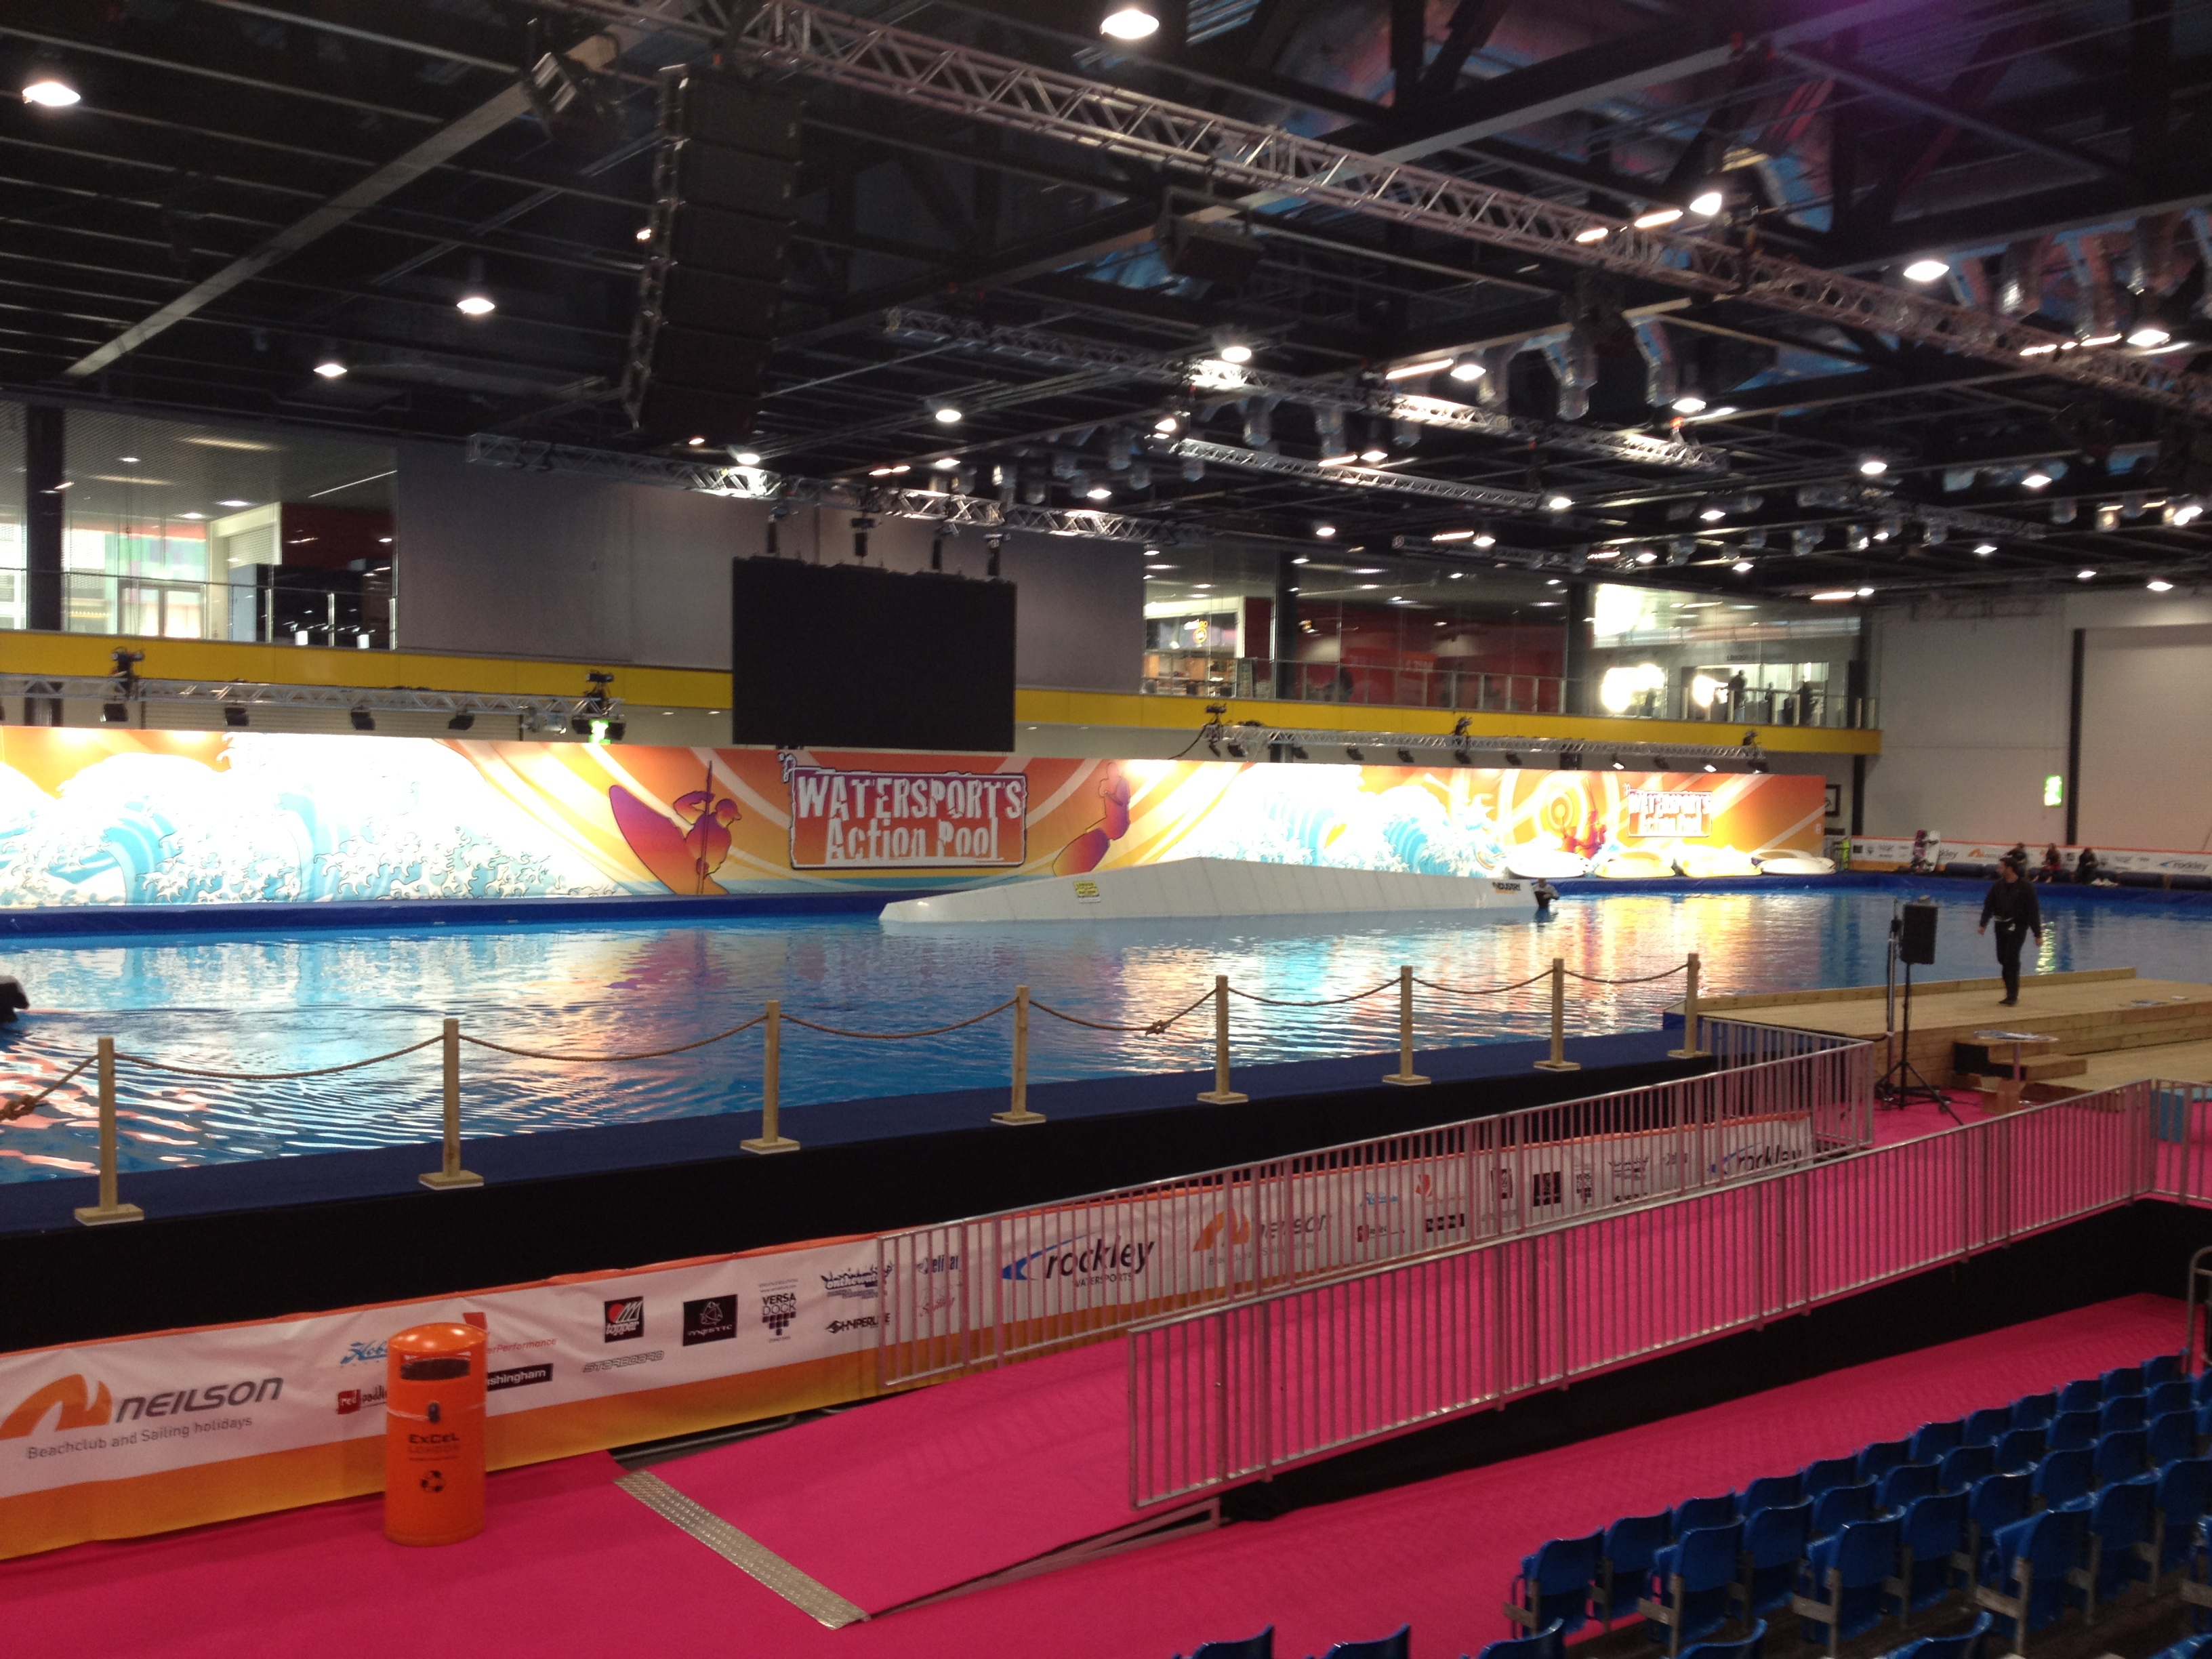 The Water Sports Action Pool - The London Boat Show SUP Sprints